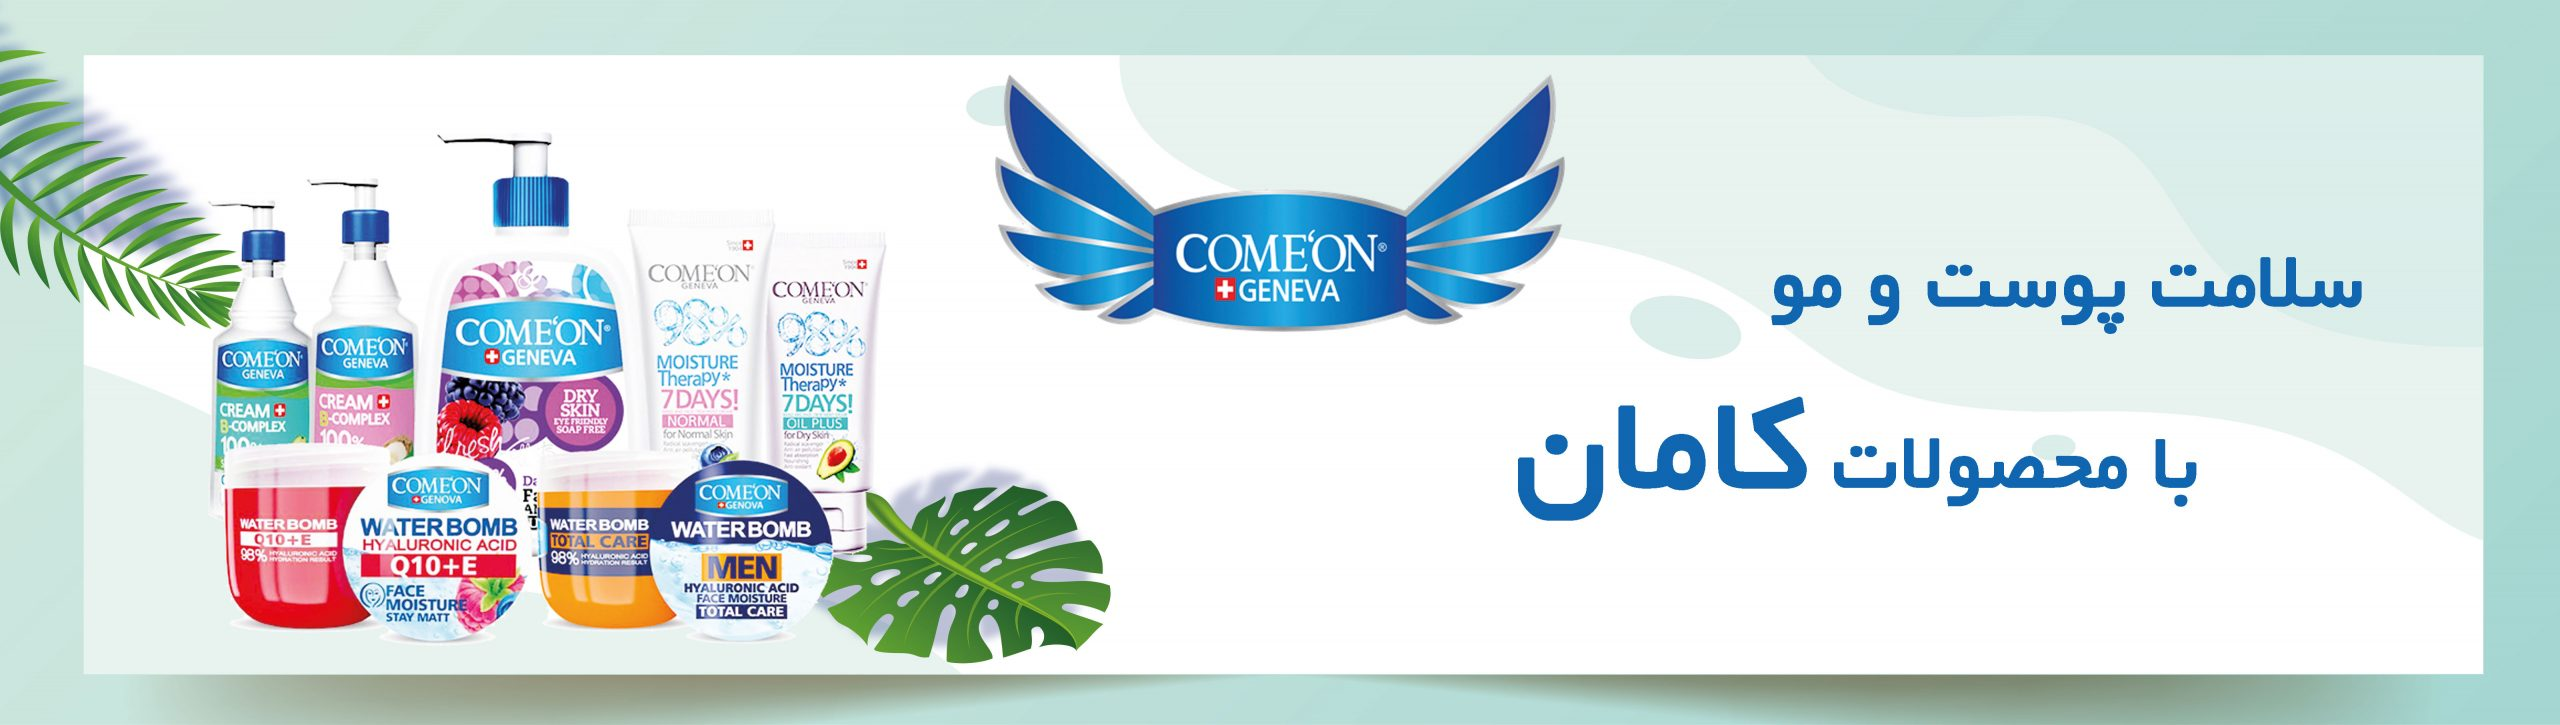 comeon banner scaled -